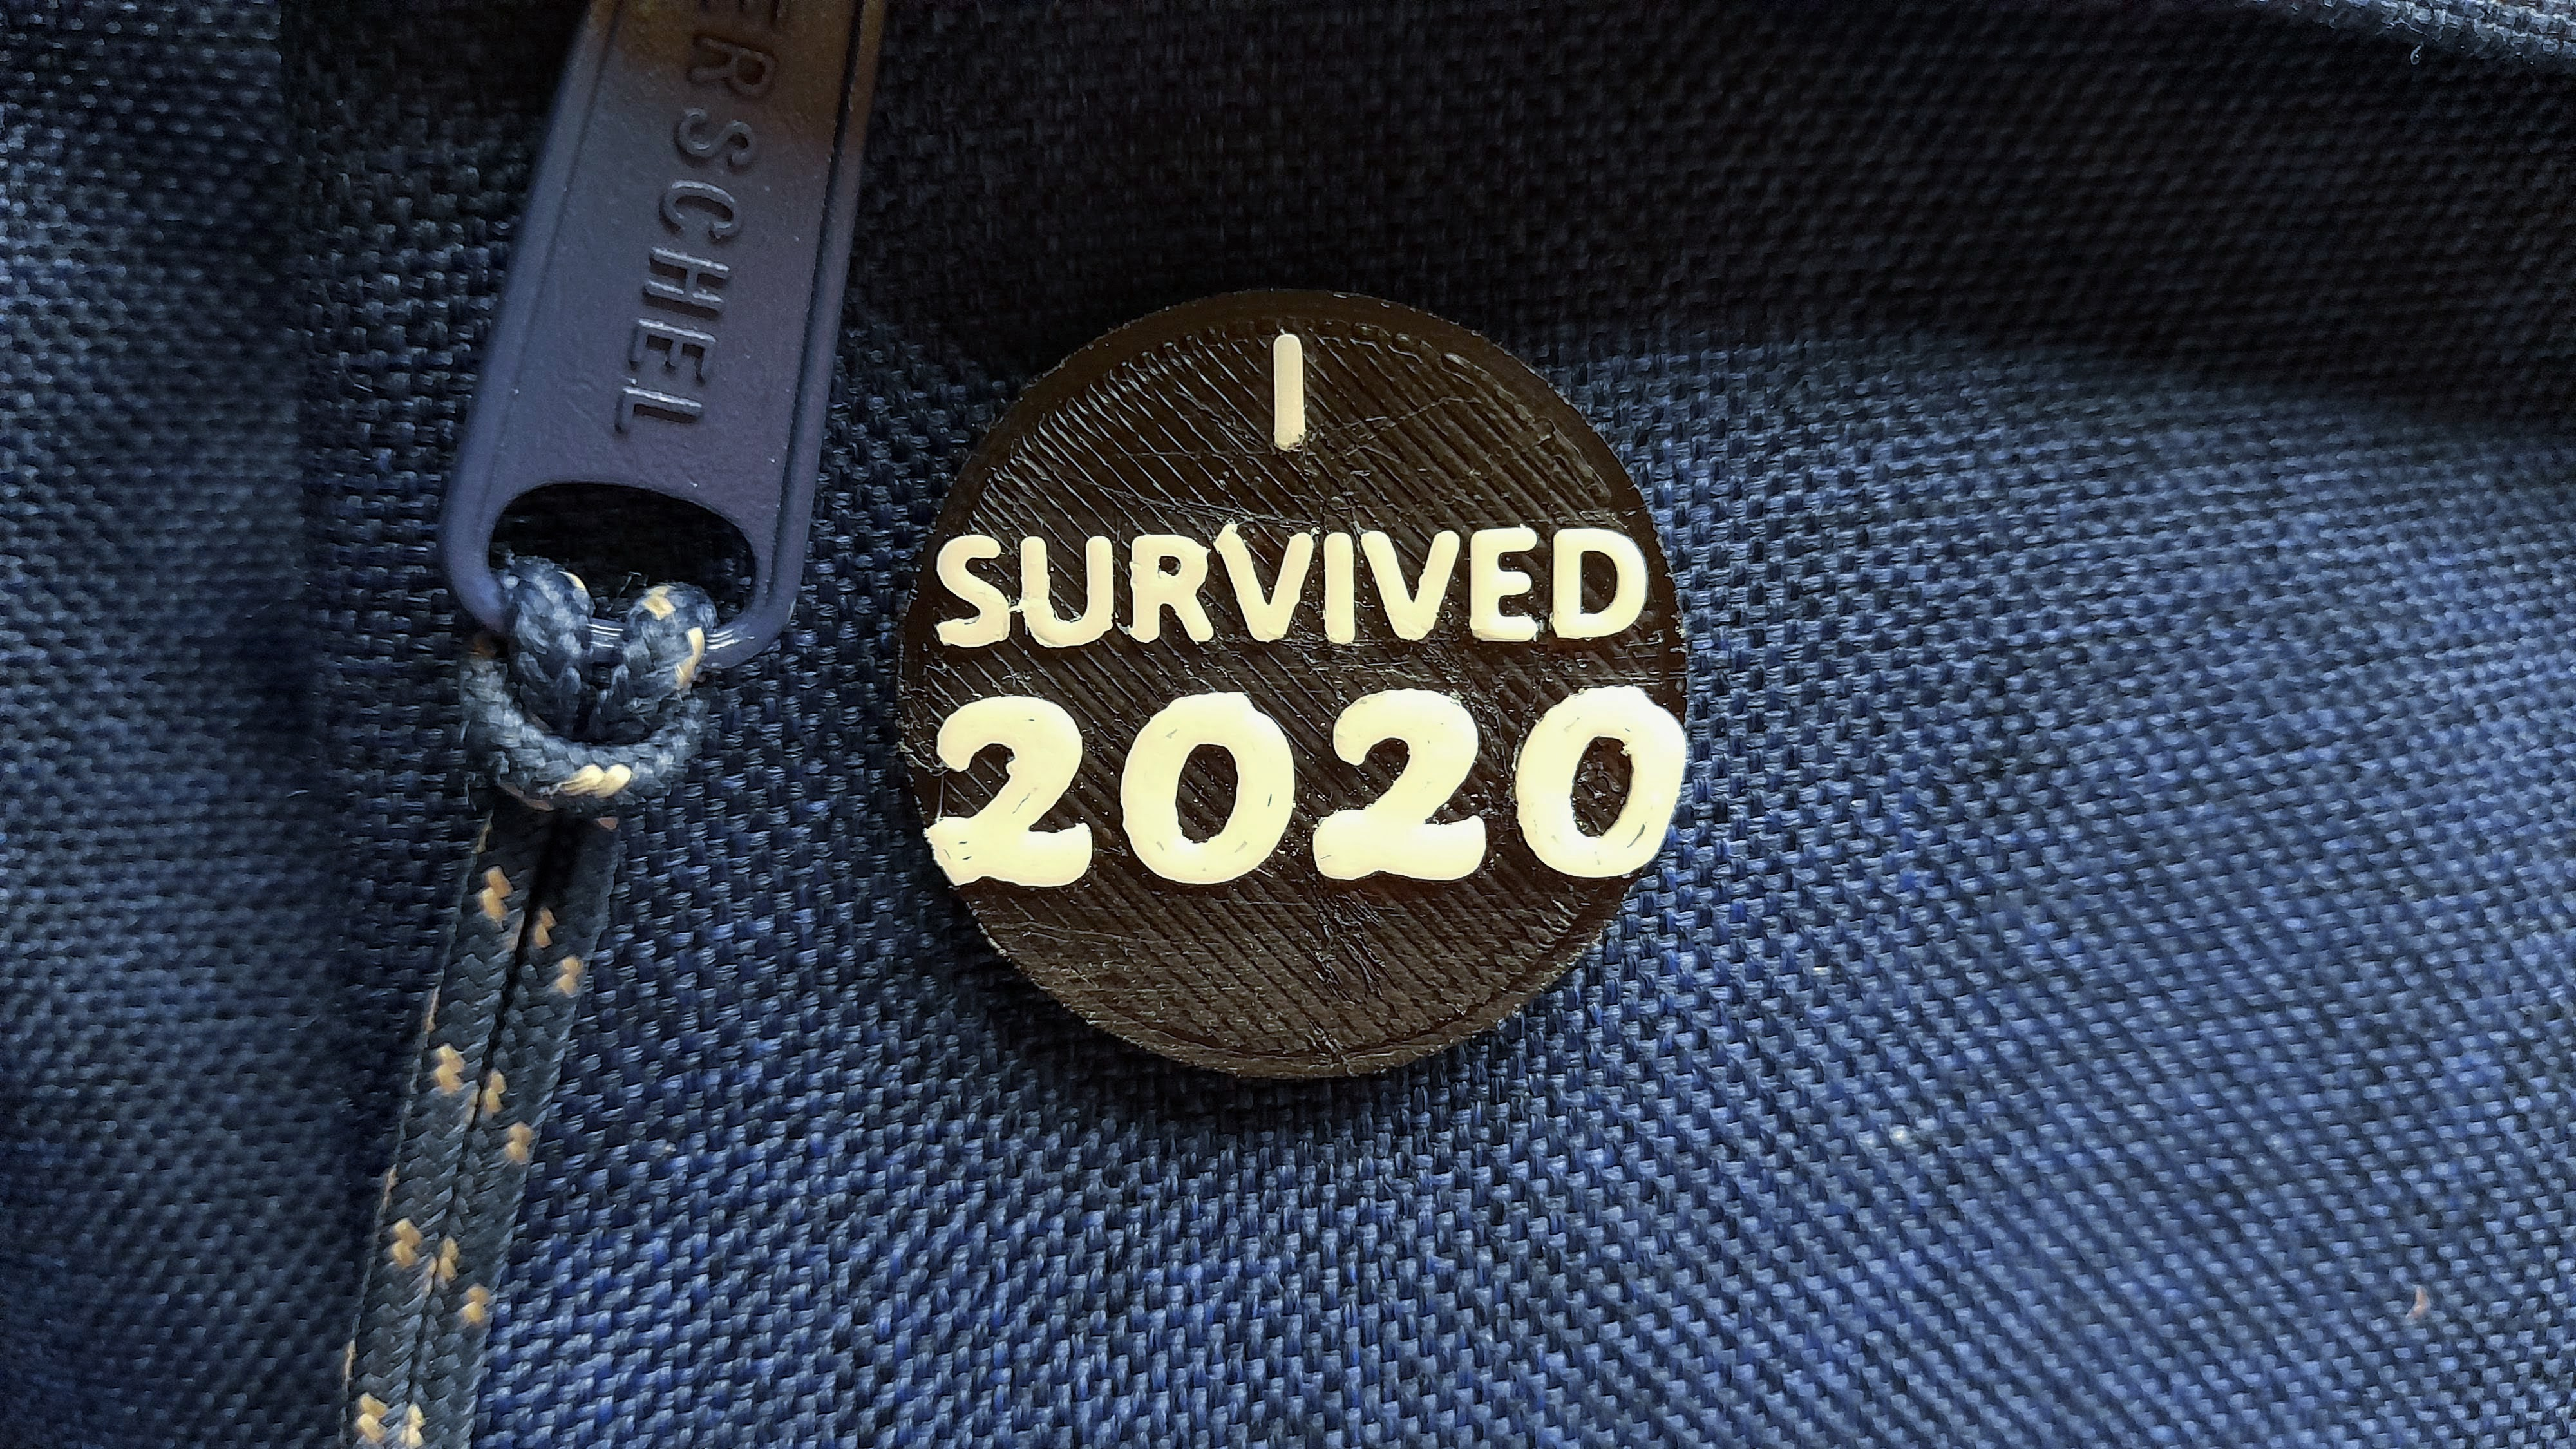 ILovePins I Survived 2020 3D Printed Pin